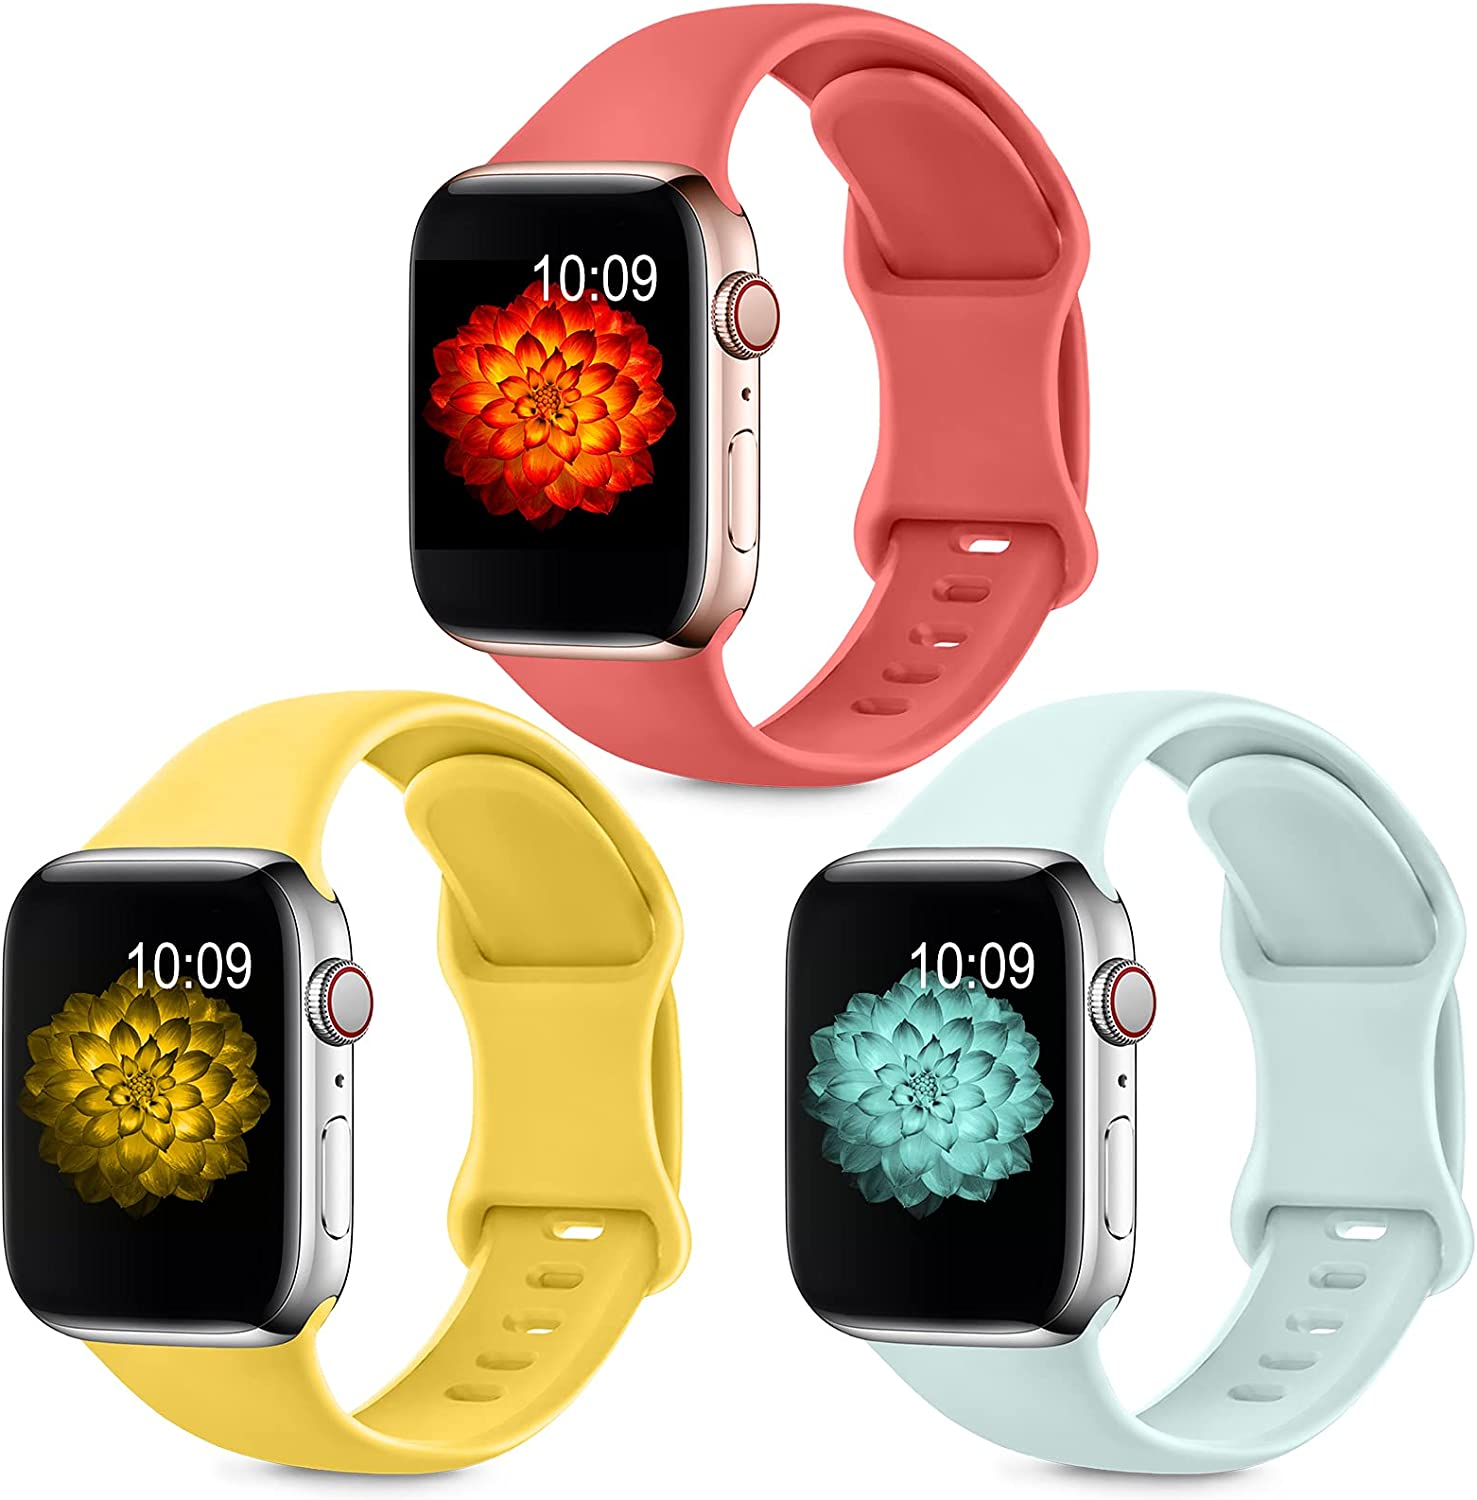 3 Pack Sport Band Compatible with Apple Watch Bands 38mm 40mm 42mm 44mm for Women Men, Soft Silicone Replacement Strap Band for iwatch SE/Series 6/5/4/3/2/1